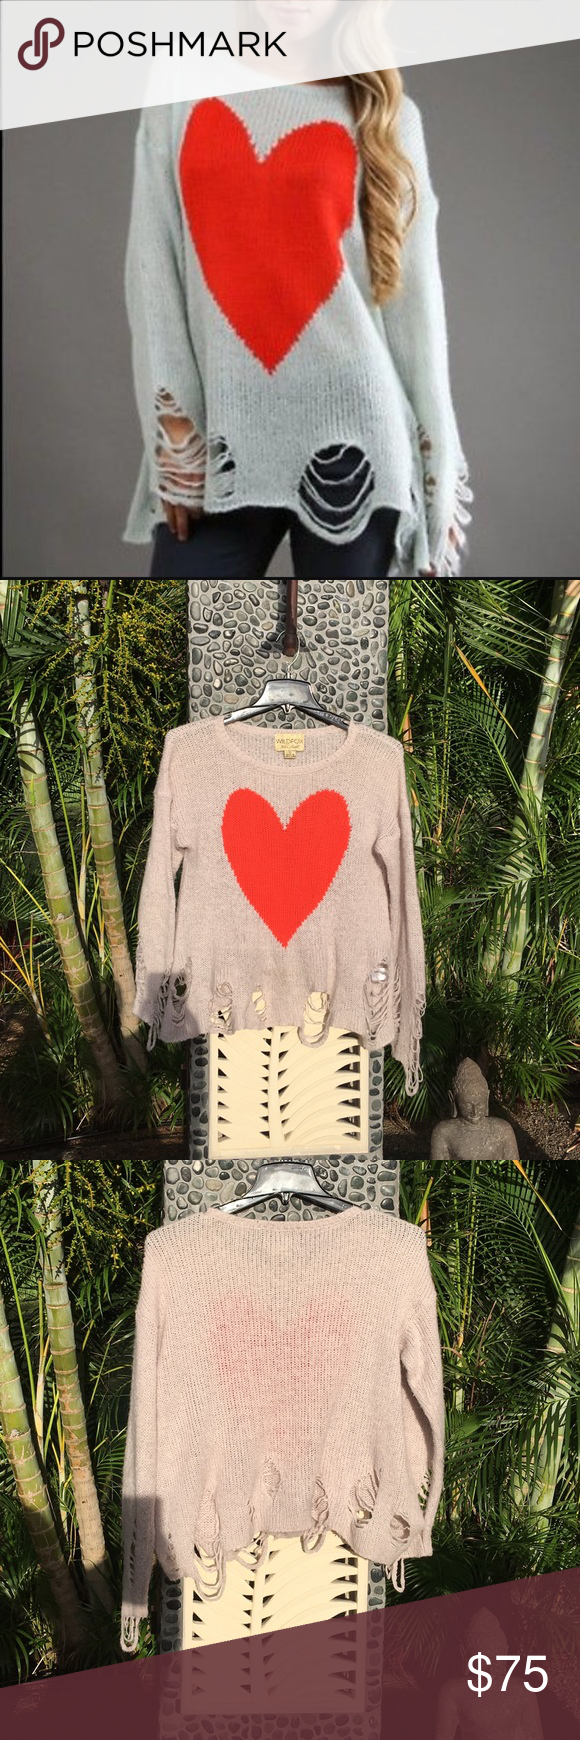 Wildfox ❤️ Bianca Jagger Lennon Sweater Super soft and lightweight Wildfox Bianca Jagger Lennon heart sweater. Gorgeous!! It's been worn a few times but is in great condition! Wildfox Sweaters